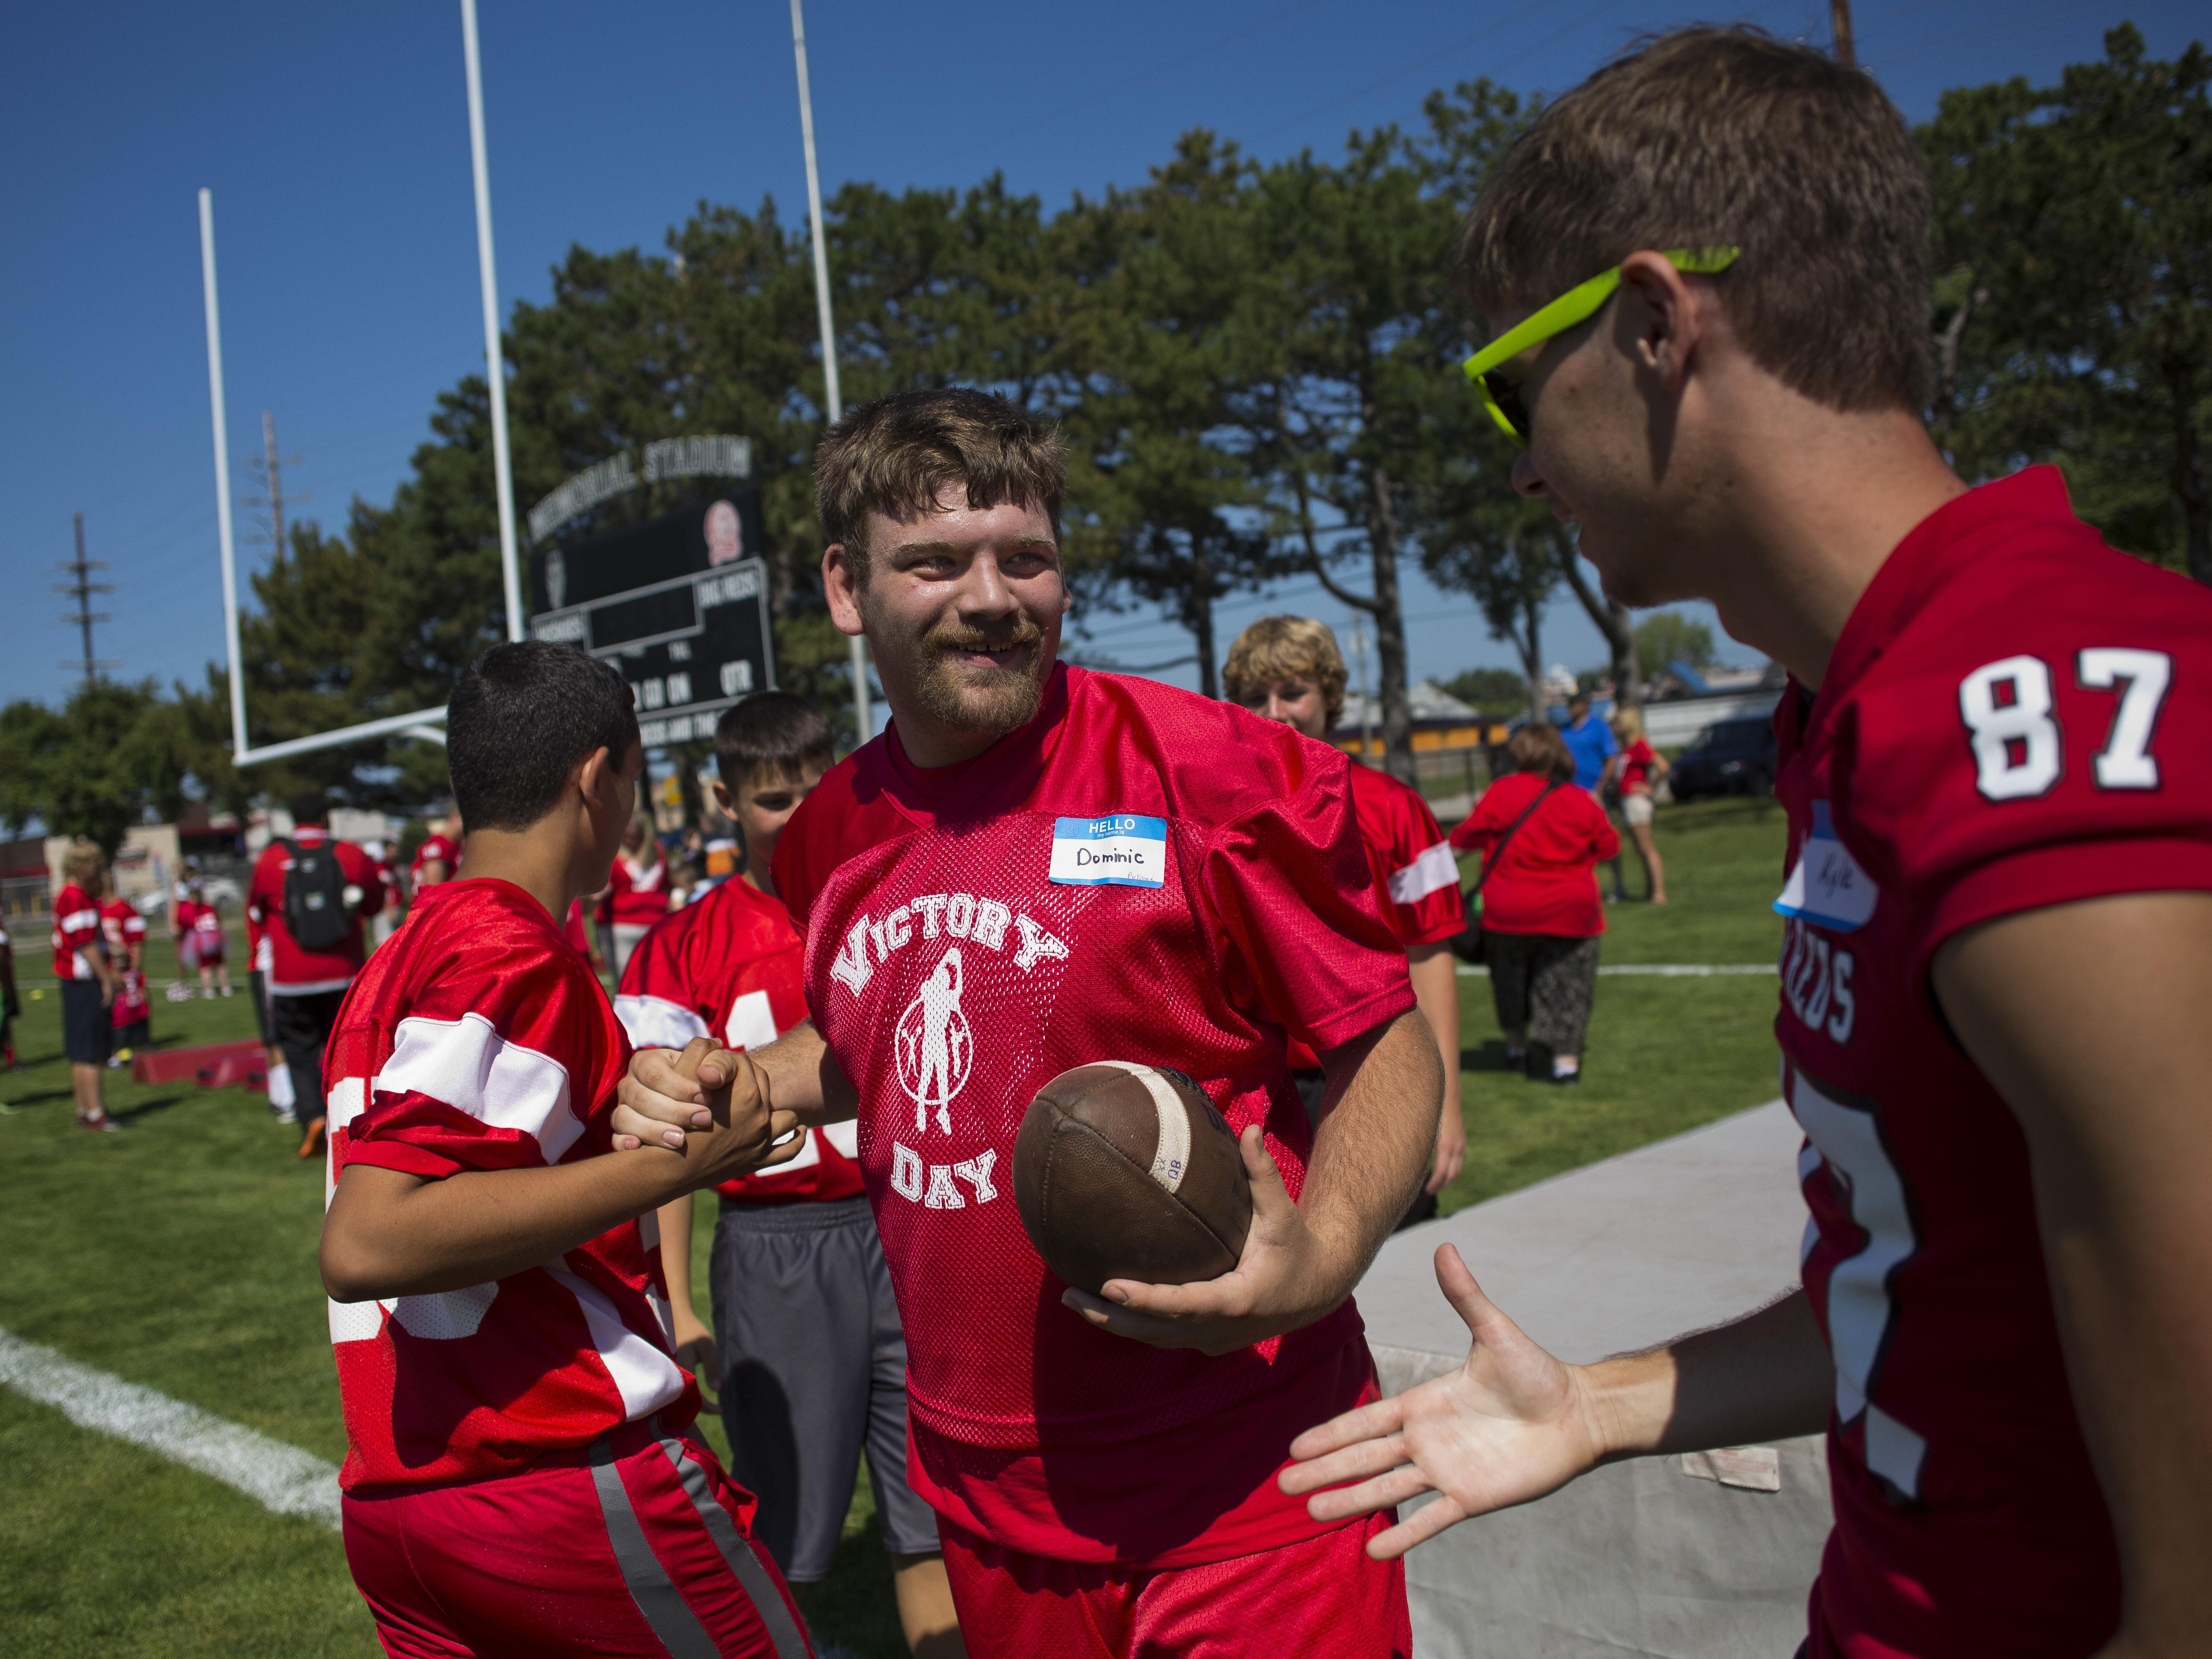 Dominic Pelione gets high-fives after running a skills drill with players during Victory Day Saturday, August 15, 2015 in Memorial Stadium at Port Huron High School. The event paired special needs students with mentors from the football and cheerleading teams.